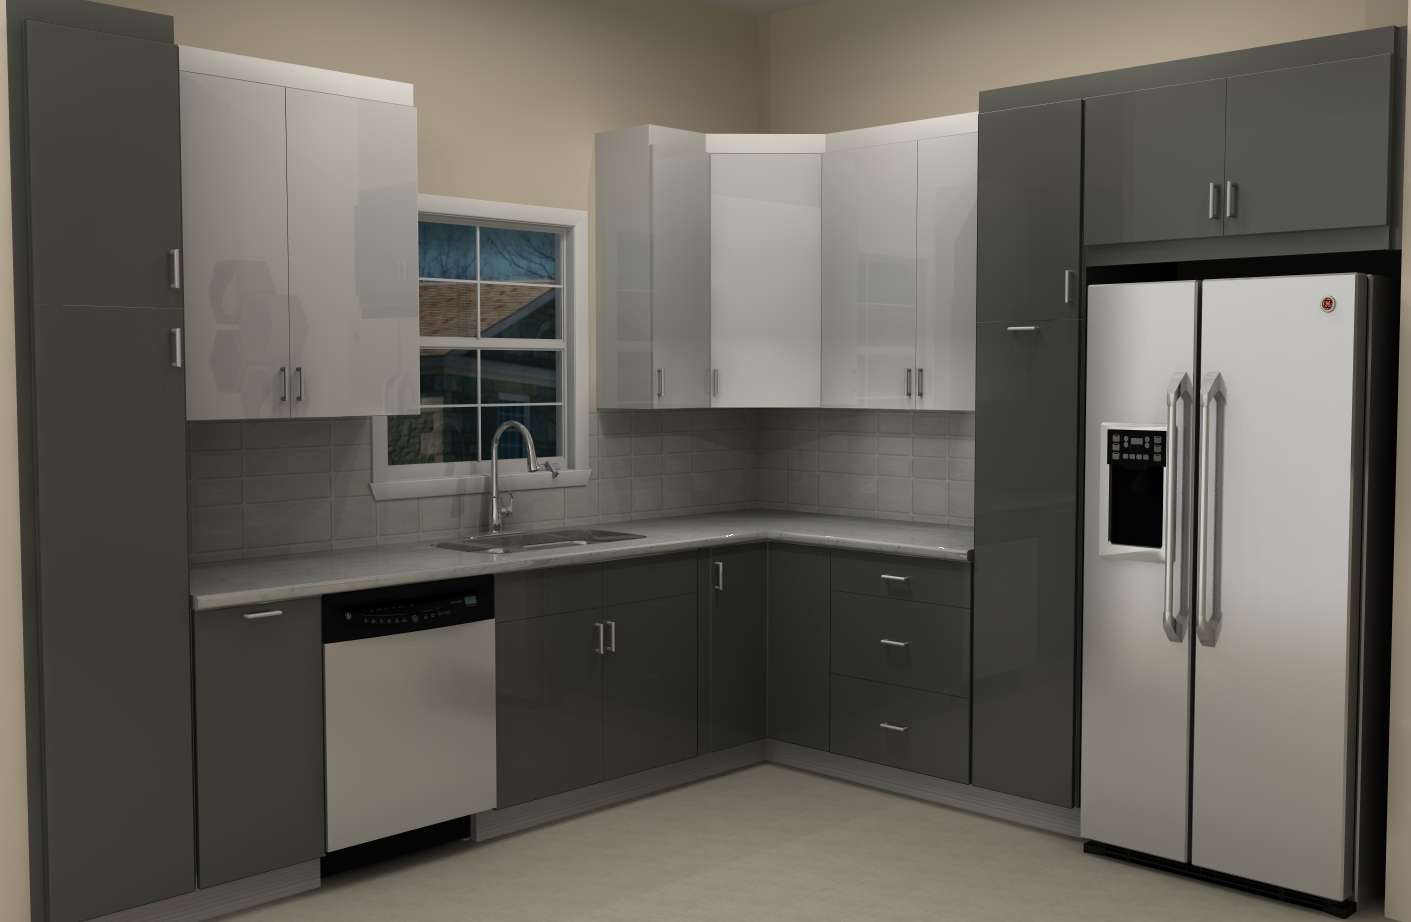 microwave surround size over cabinets of full kitchen cabinet standard built wall the in awesome refrigerator ikea kit